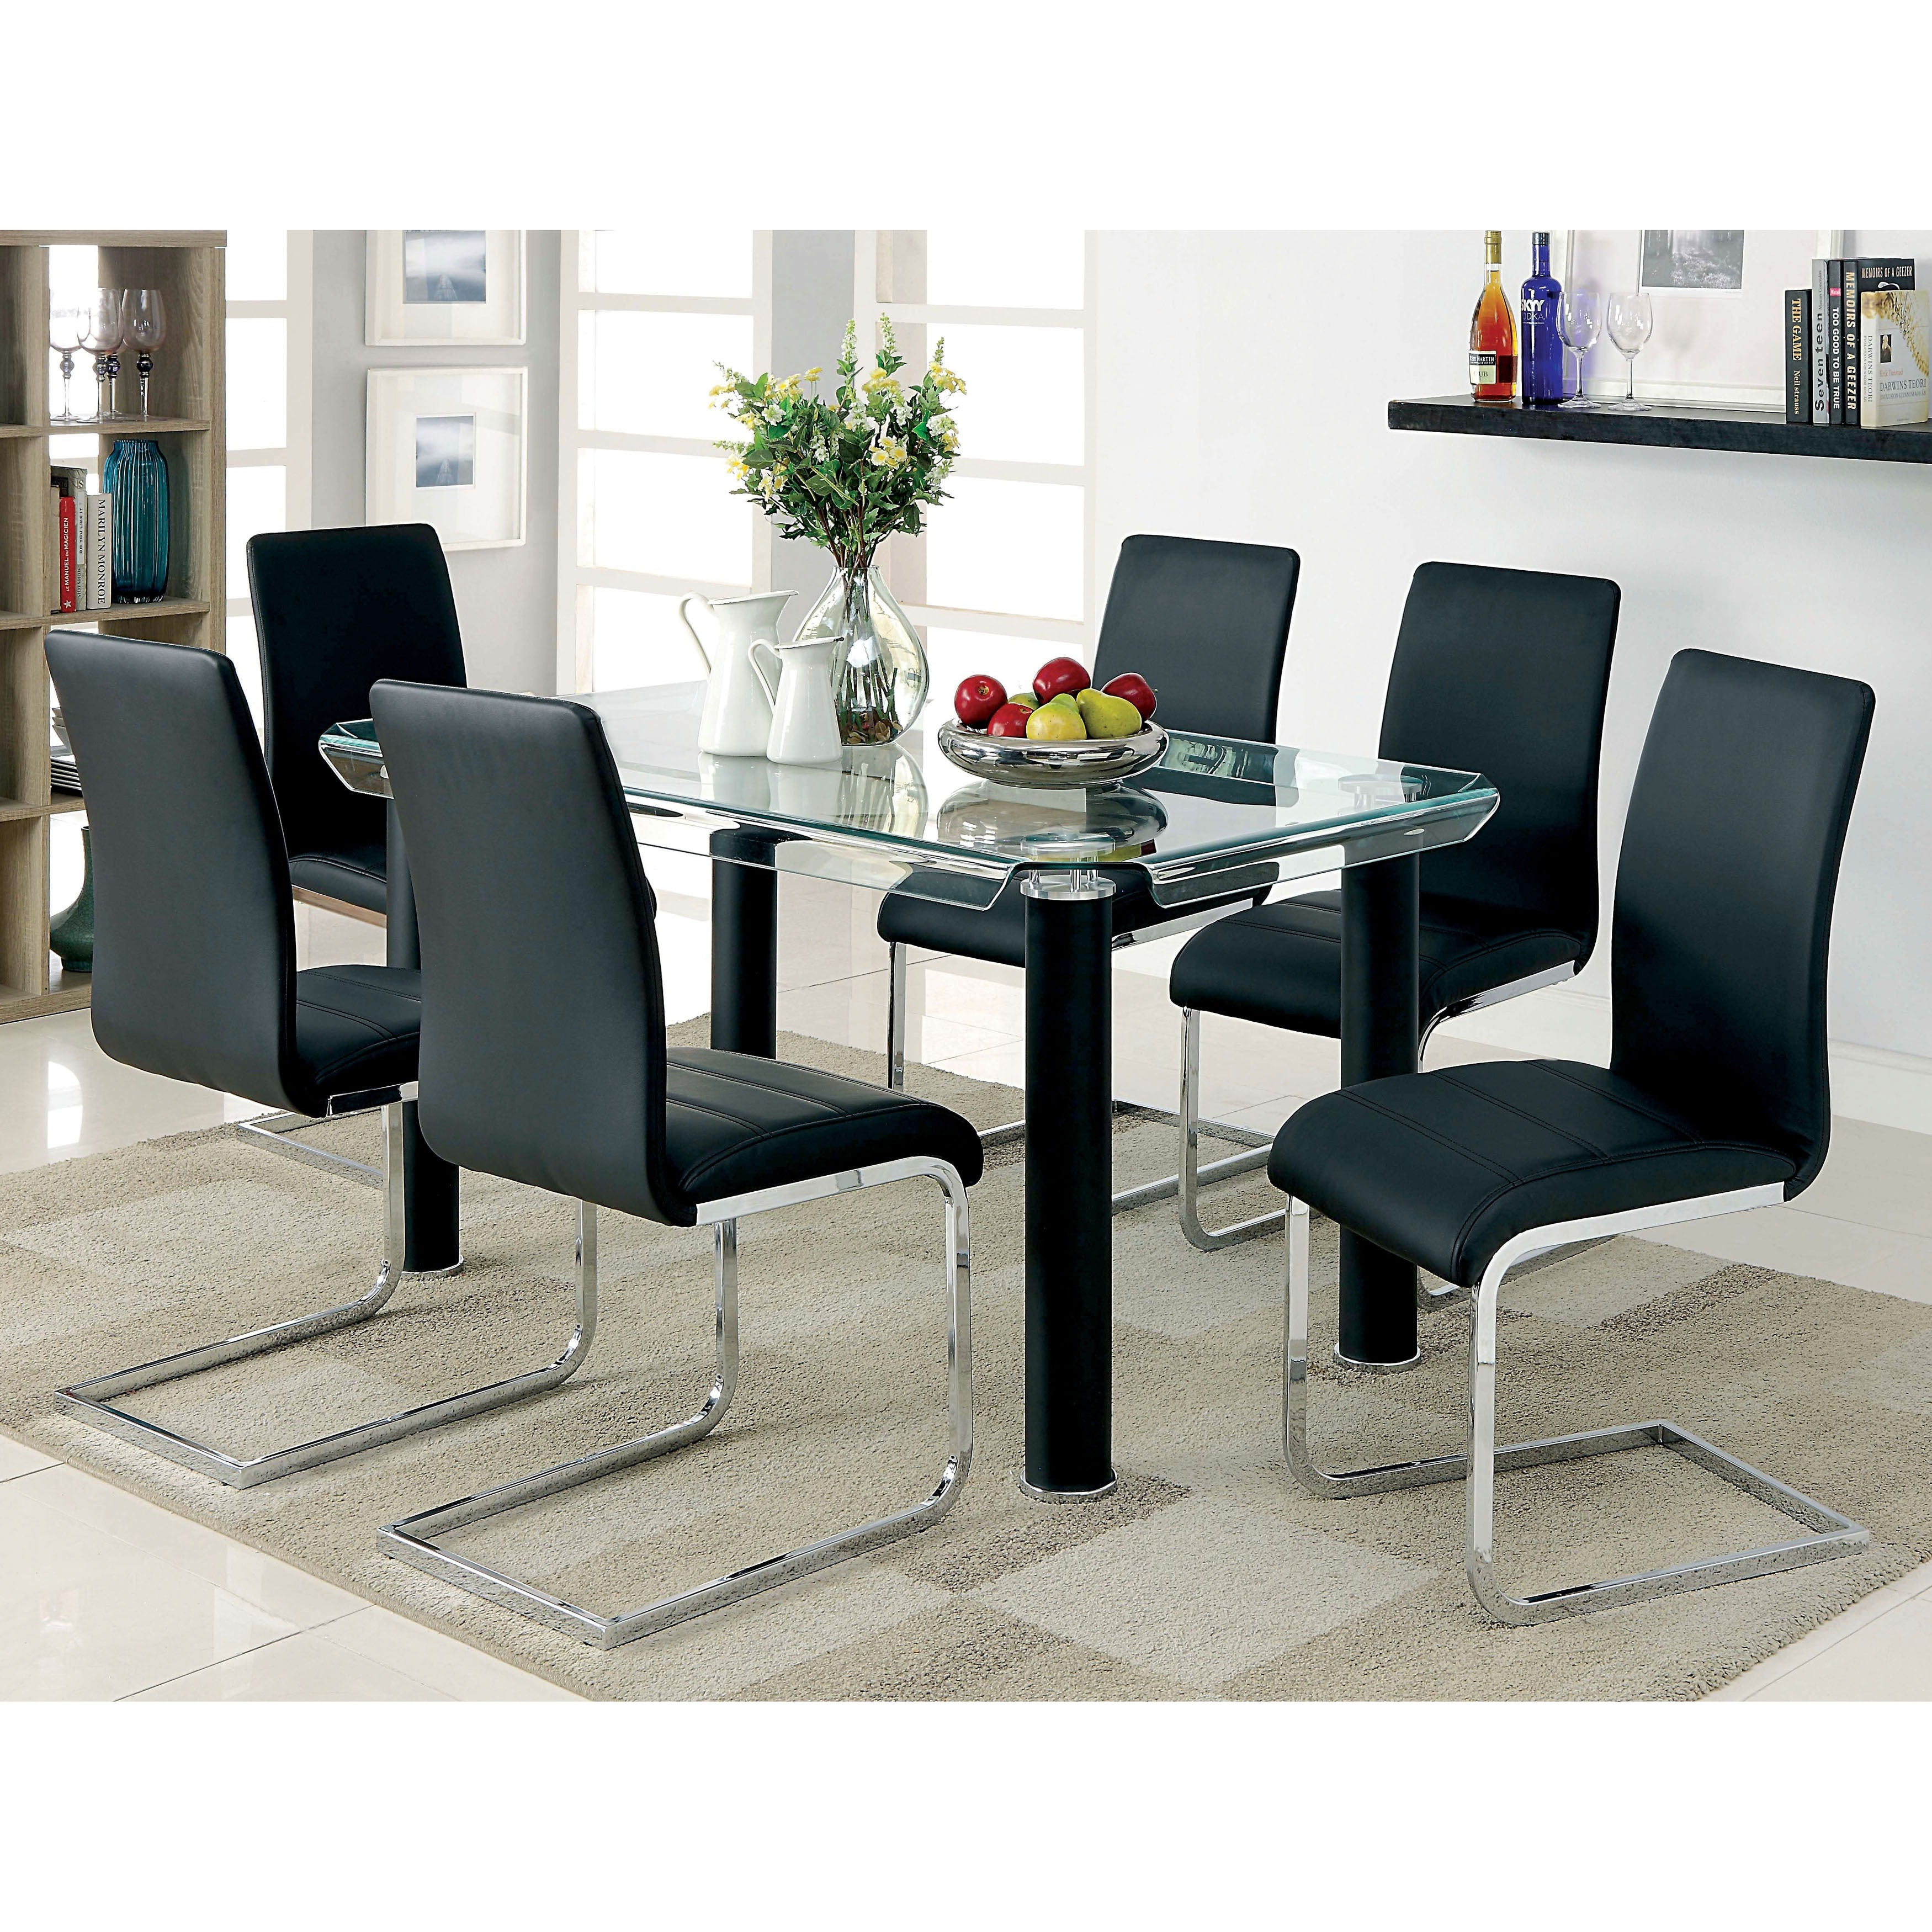 Furniture of America Contemporary Tempered Glass 59 inch